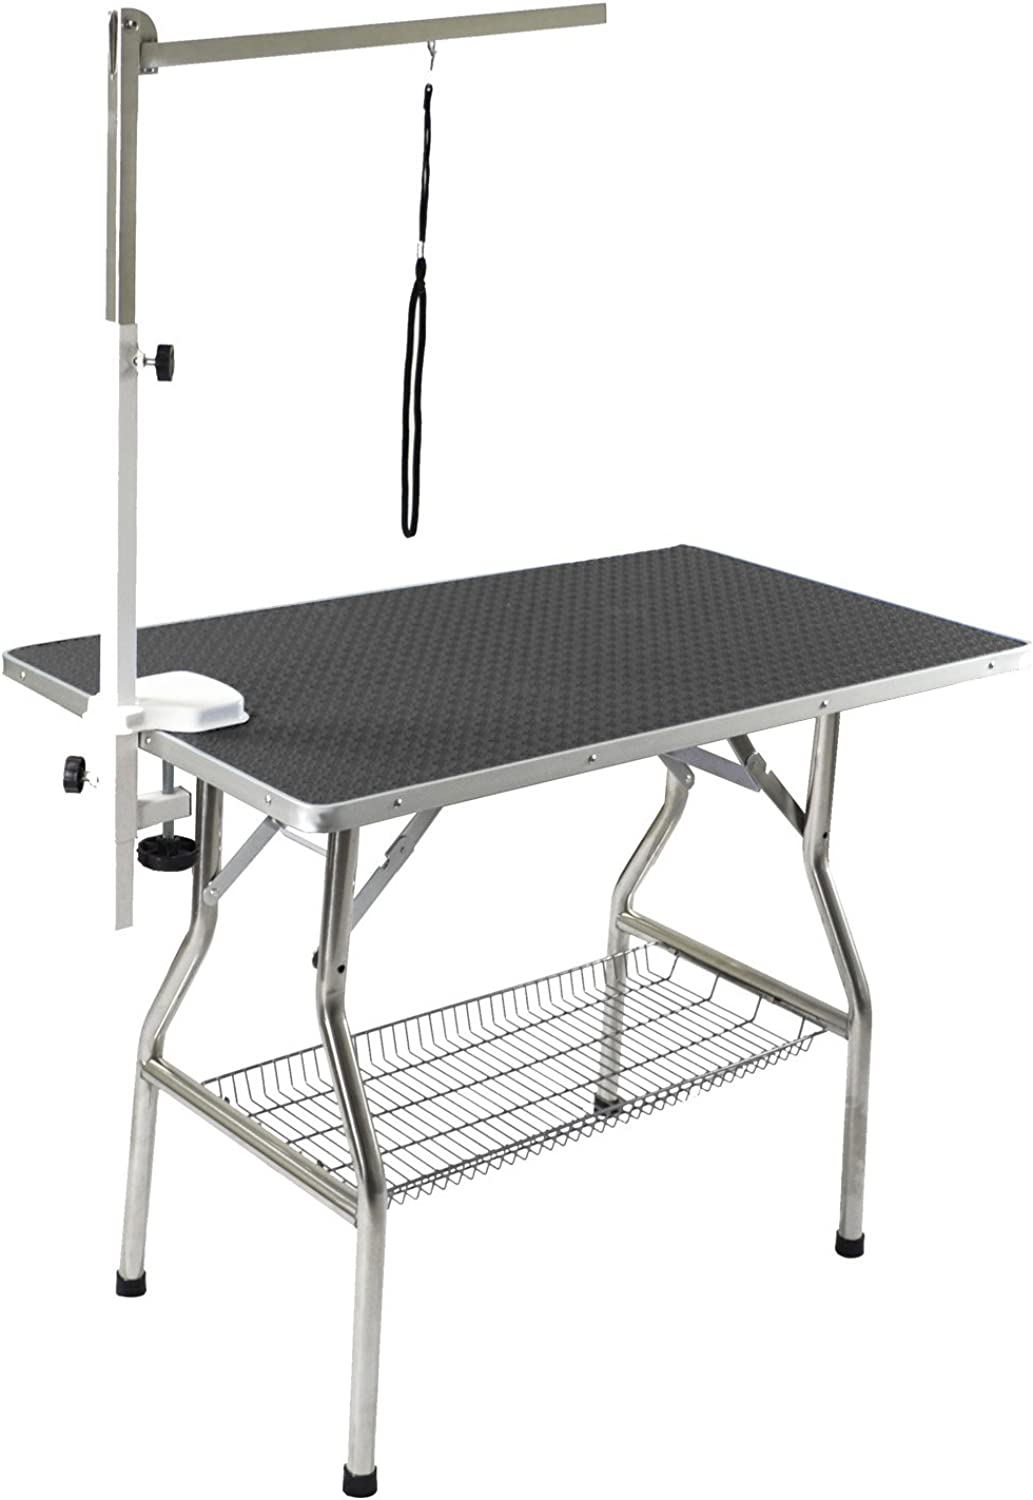 Flying Pig 32  Small Size Heavy Duty Stainless Steel Frame Foldable Dog Pet Grooming Table (32  x 21 )